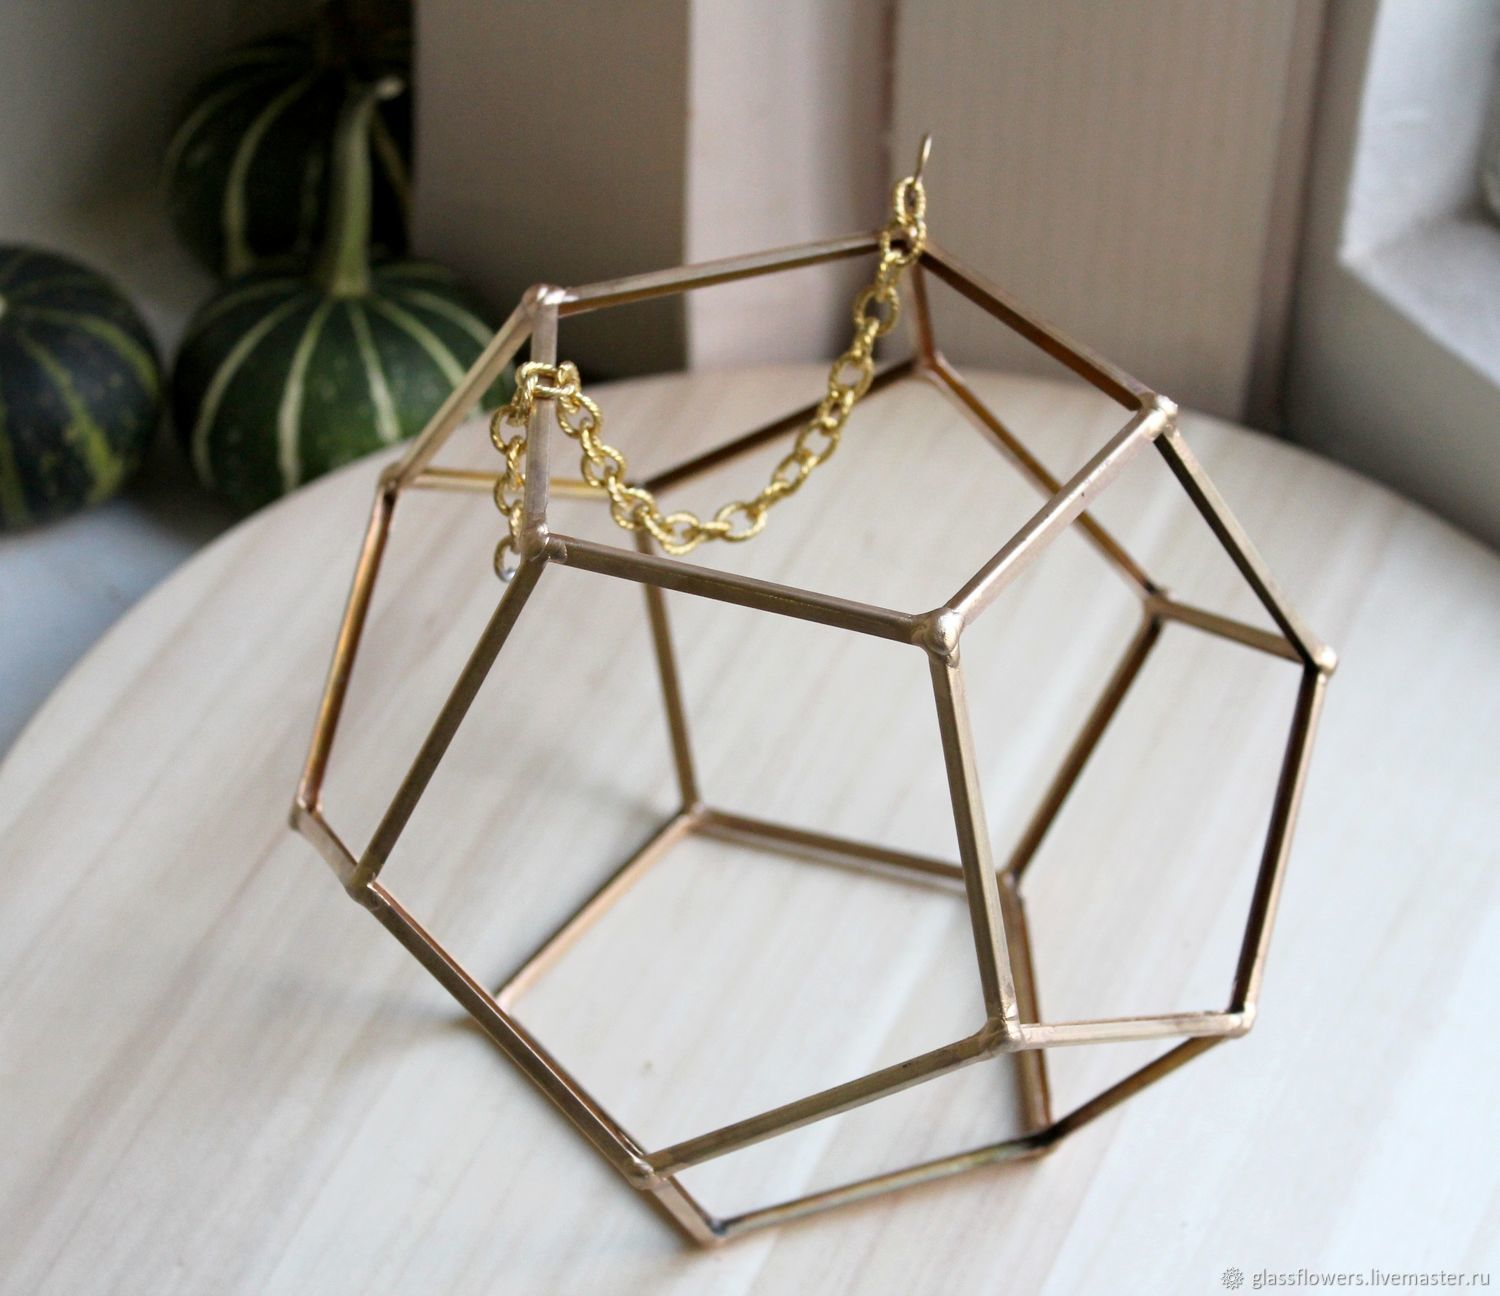 Brass hollow geometric shape with no glass for decorating Loft – shop  online on Livemaster with shipping - H1OEHCOM   St  Petersburg